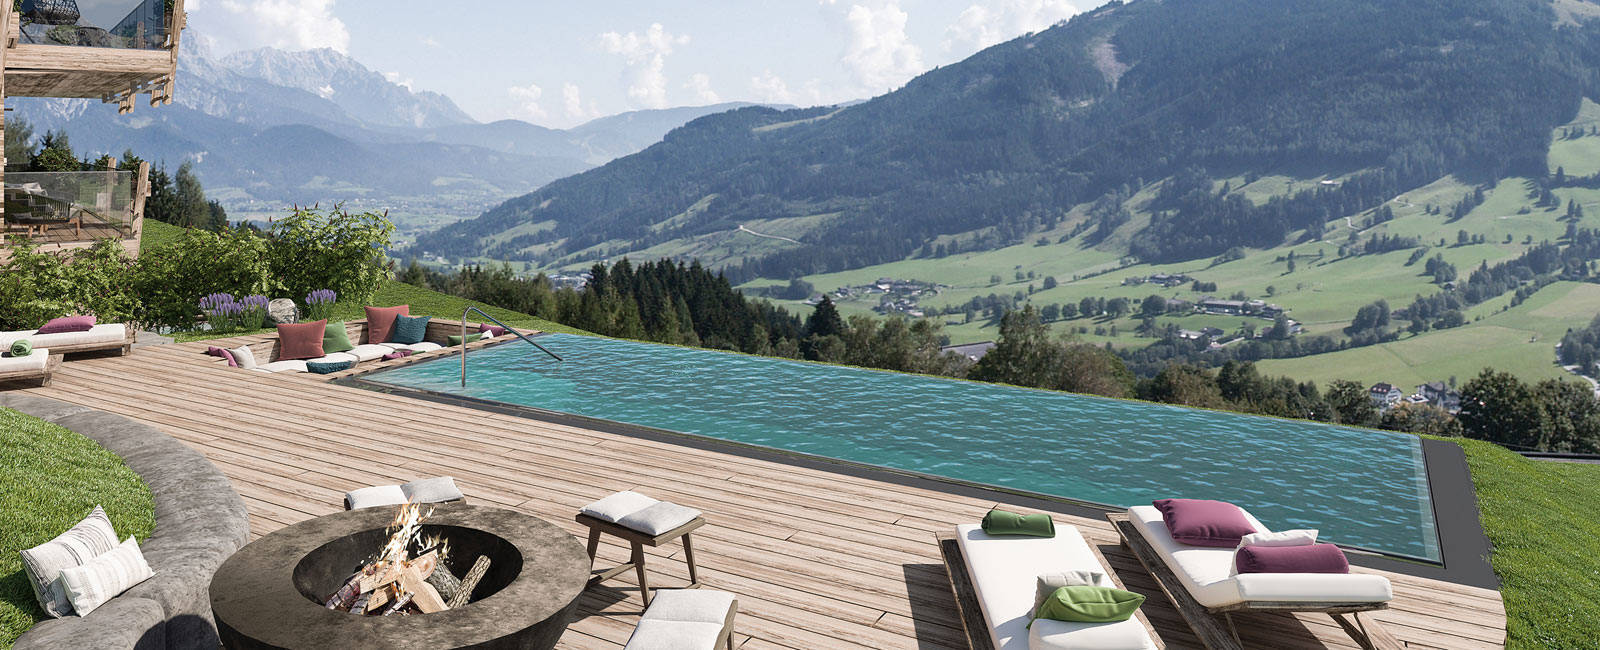 News   SENHOOG Luxury Holiday Homes eröffnet zwei neue Chalets in Leogang